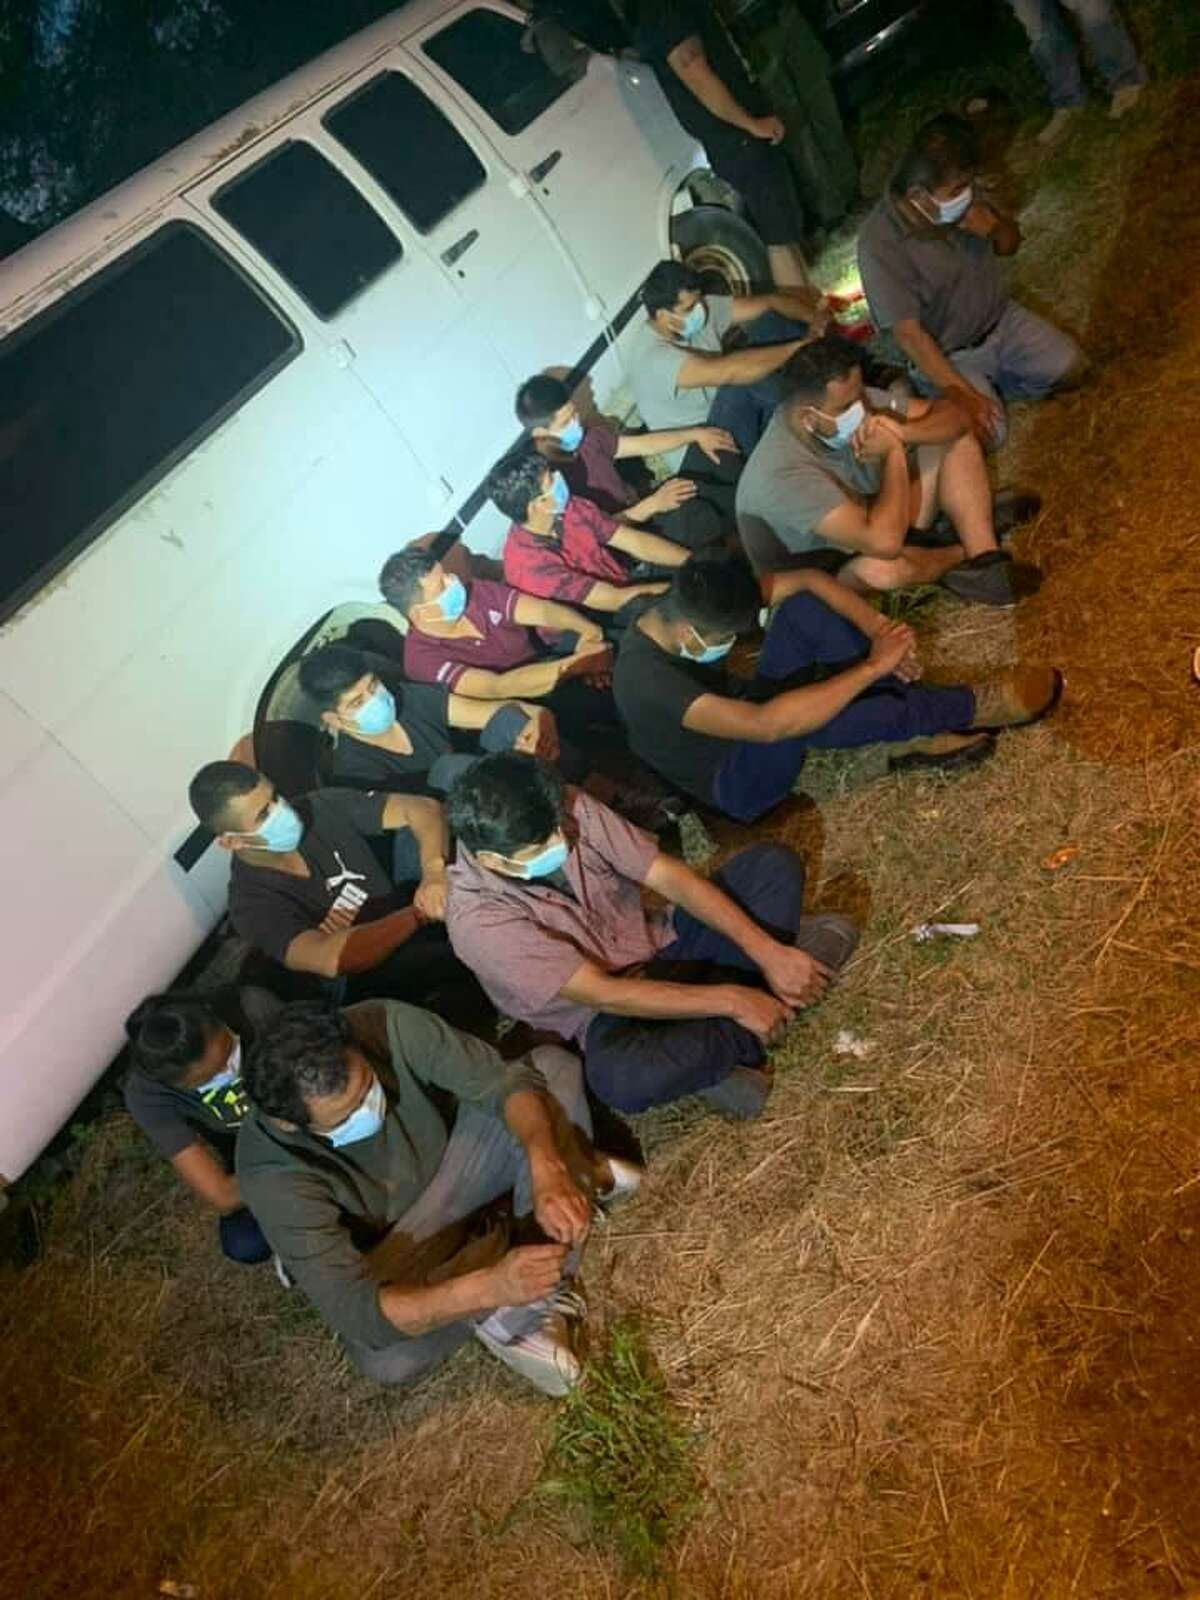 The Webb County Sheriff's Office said they rescued these 13 migrants who were held against their will at a south Laredo home.